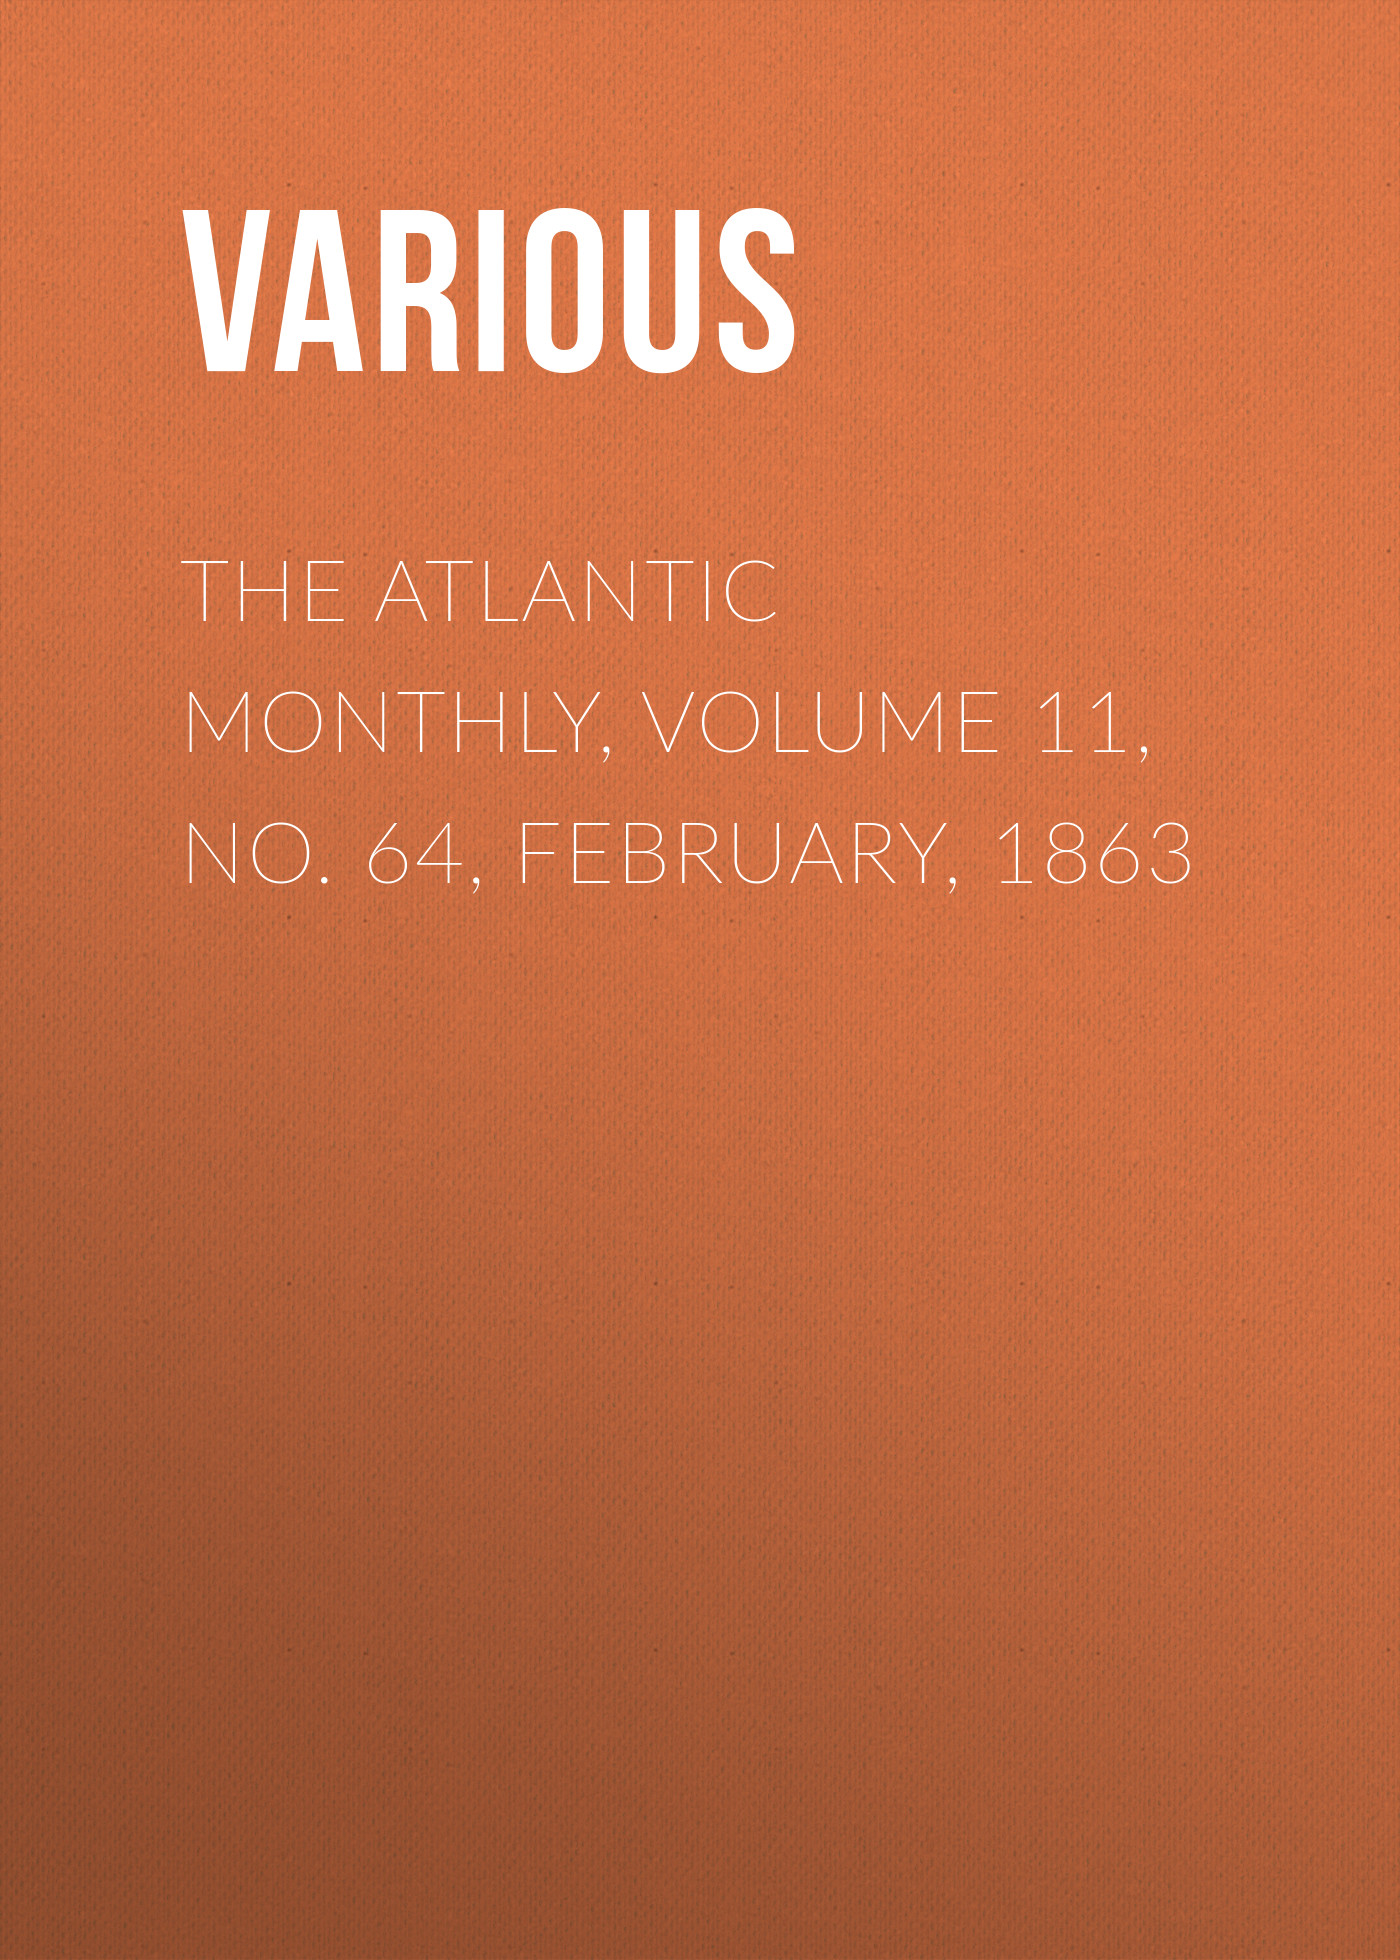 Various The Atlantic Monthly, Volume 11, No. 64, February, 1863 various the atlantic monthly volume 11 no 63 january 1863